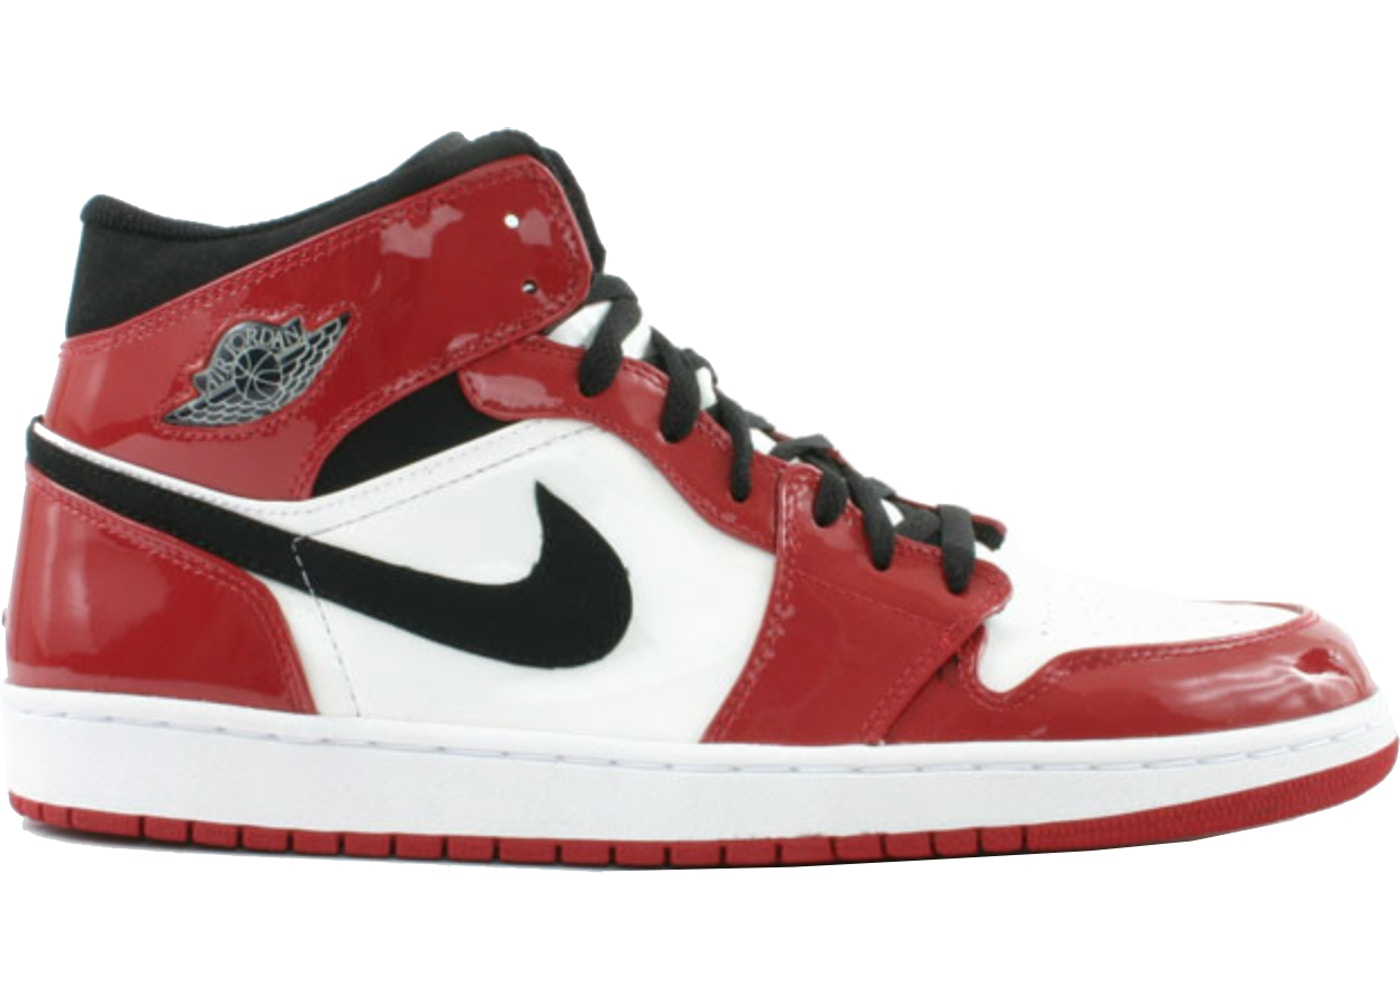 super popular bce21 3f77e Jordan 1 Retro Chicago Bulls Patent (2003)